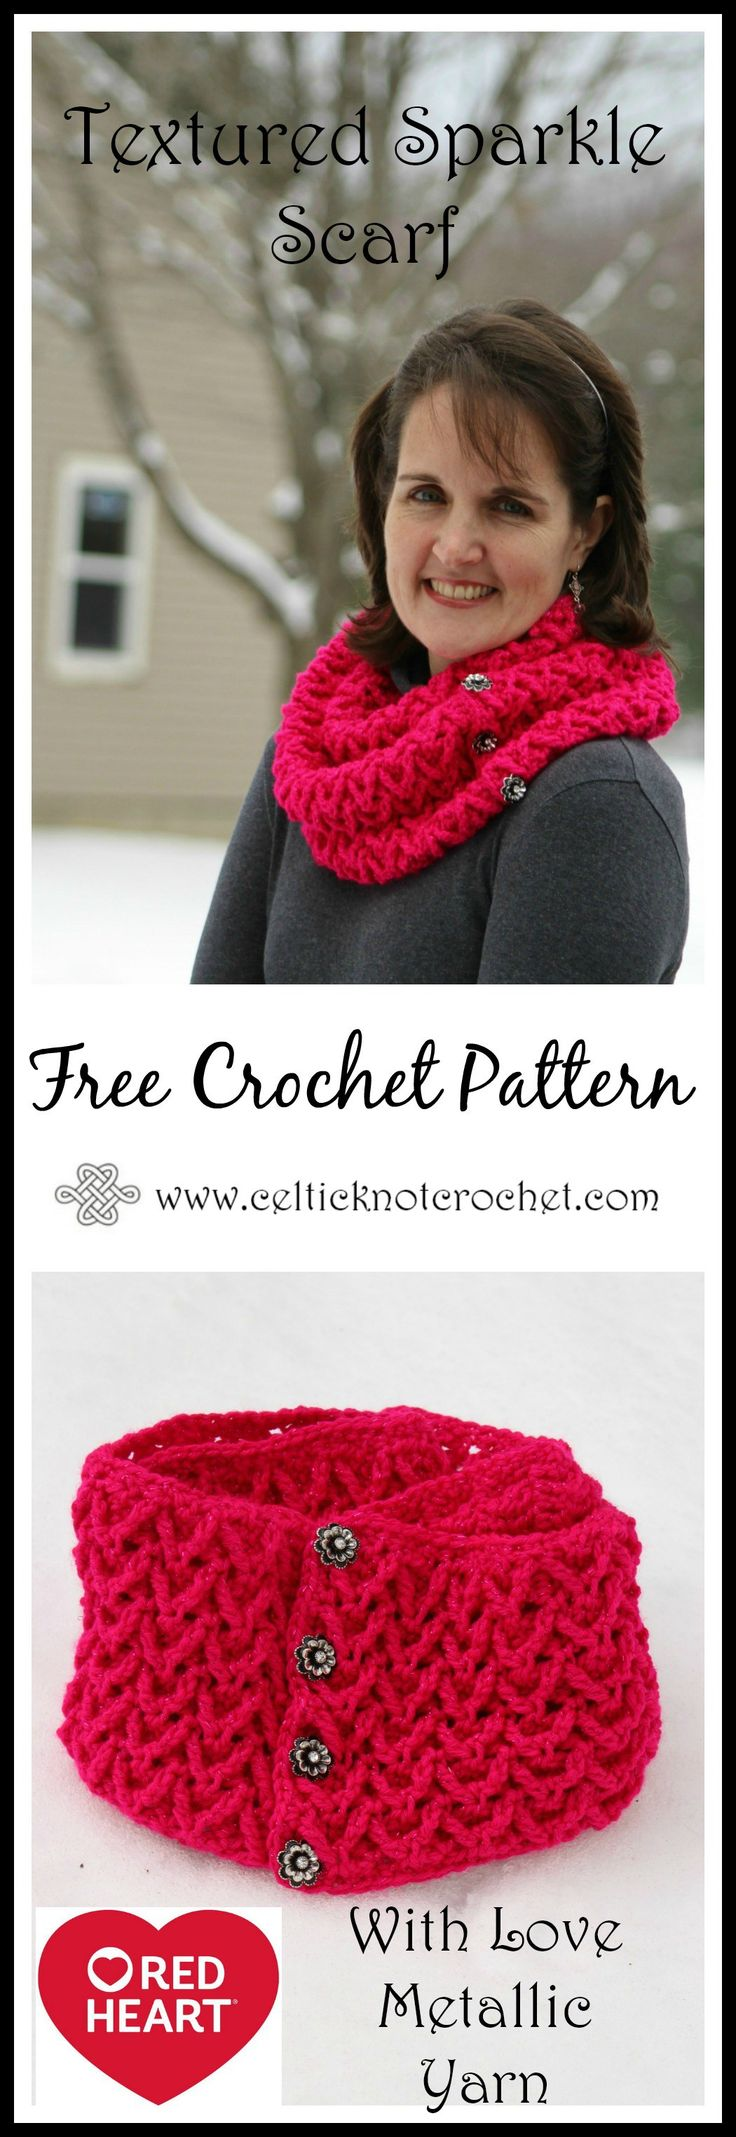 Textured Sparkle Scarf - by Jennifer E Ryan at Celtic Knot Crochet - FREE crochet pattern with a video tutorial!